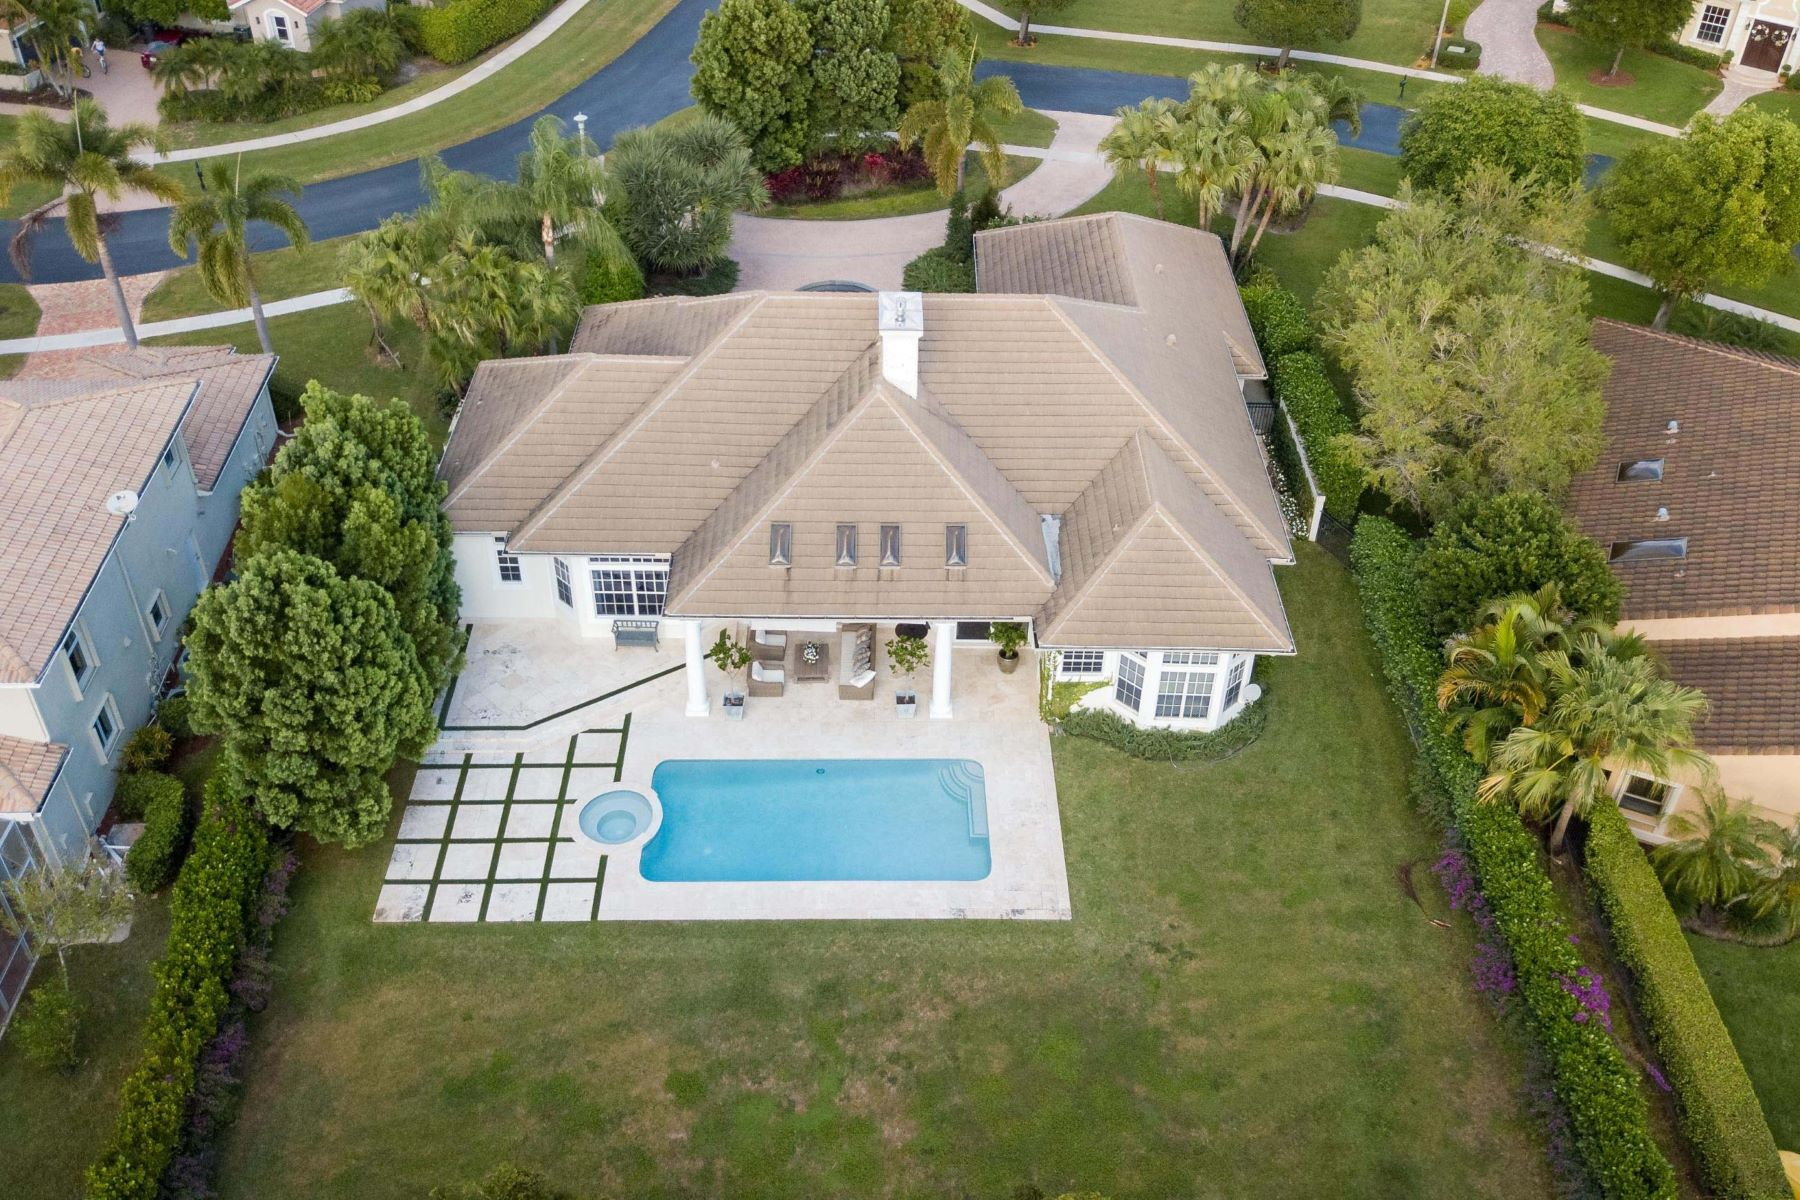 Single Family Homes for Sale at 2369 Newbury Court, Other, FL Other Areas, Florida 00000 United States